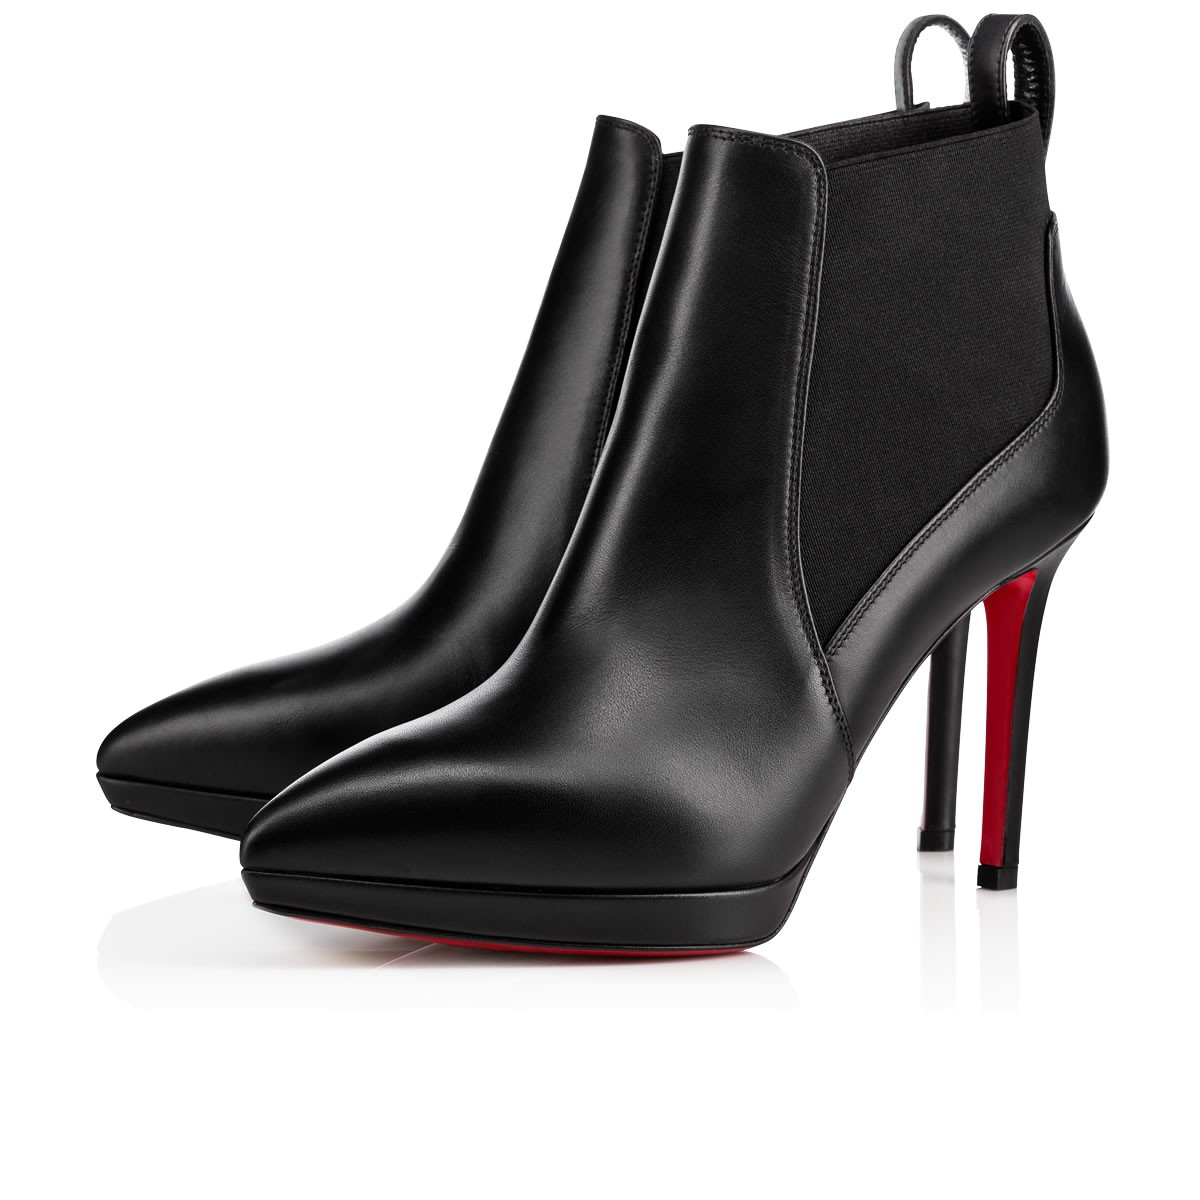 Shoes - Crochinetta - Christian Louboutin